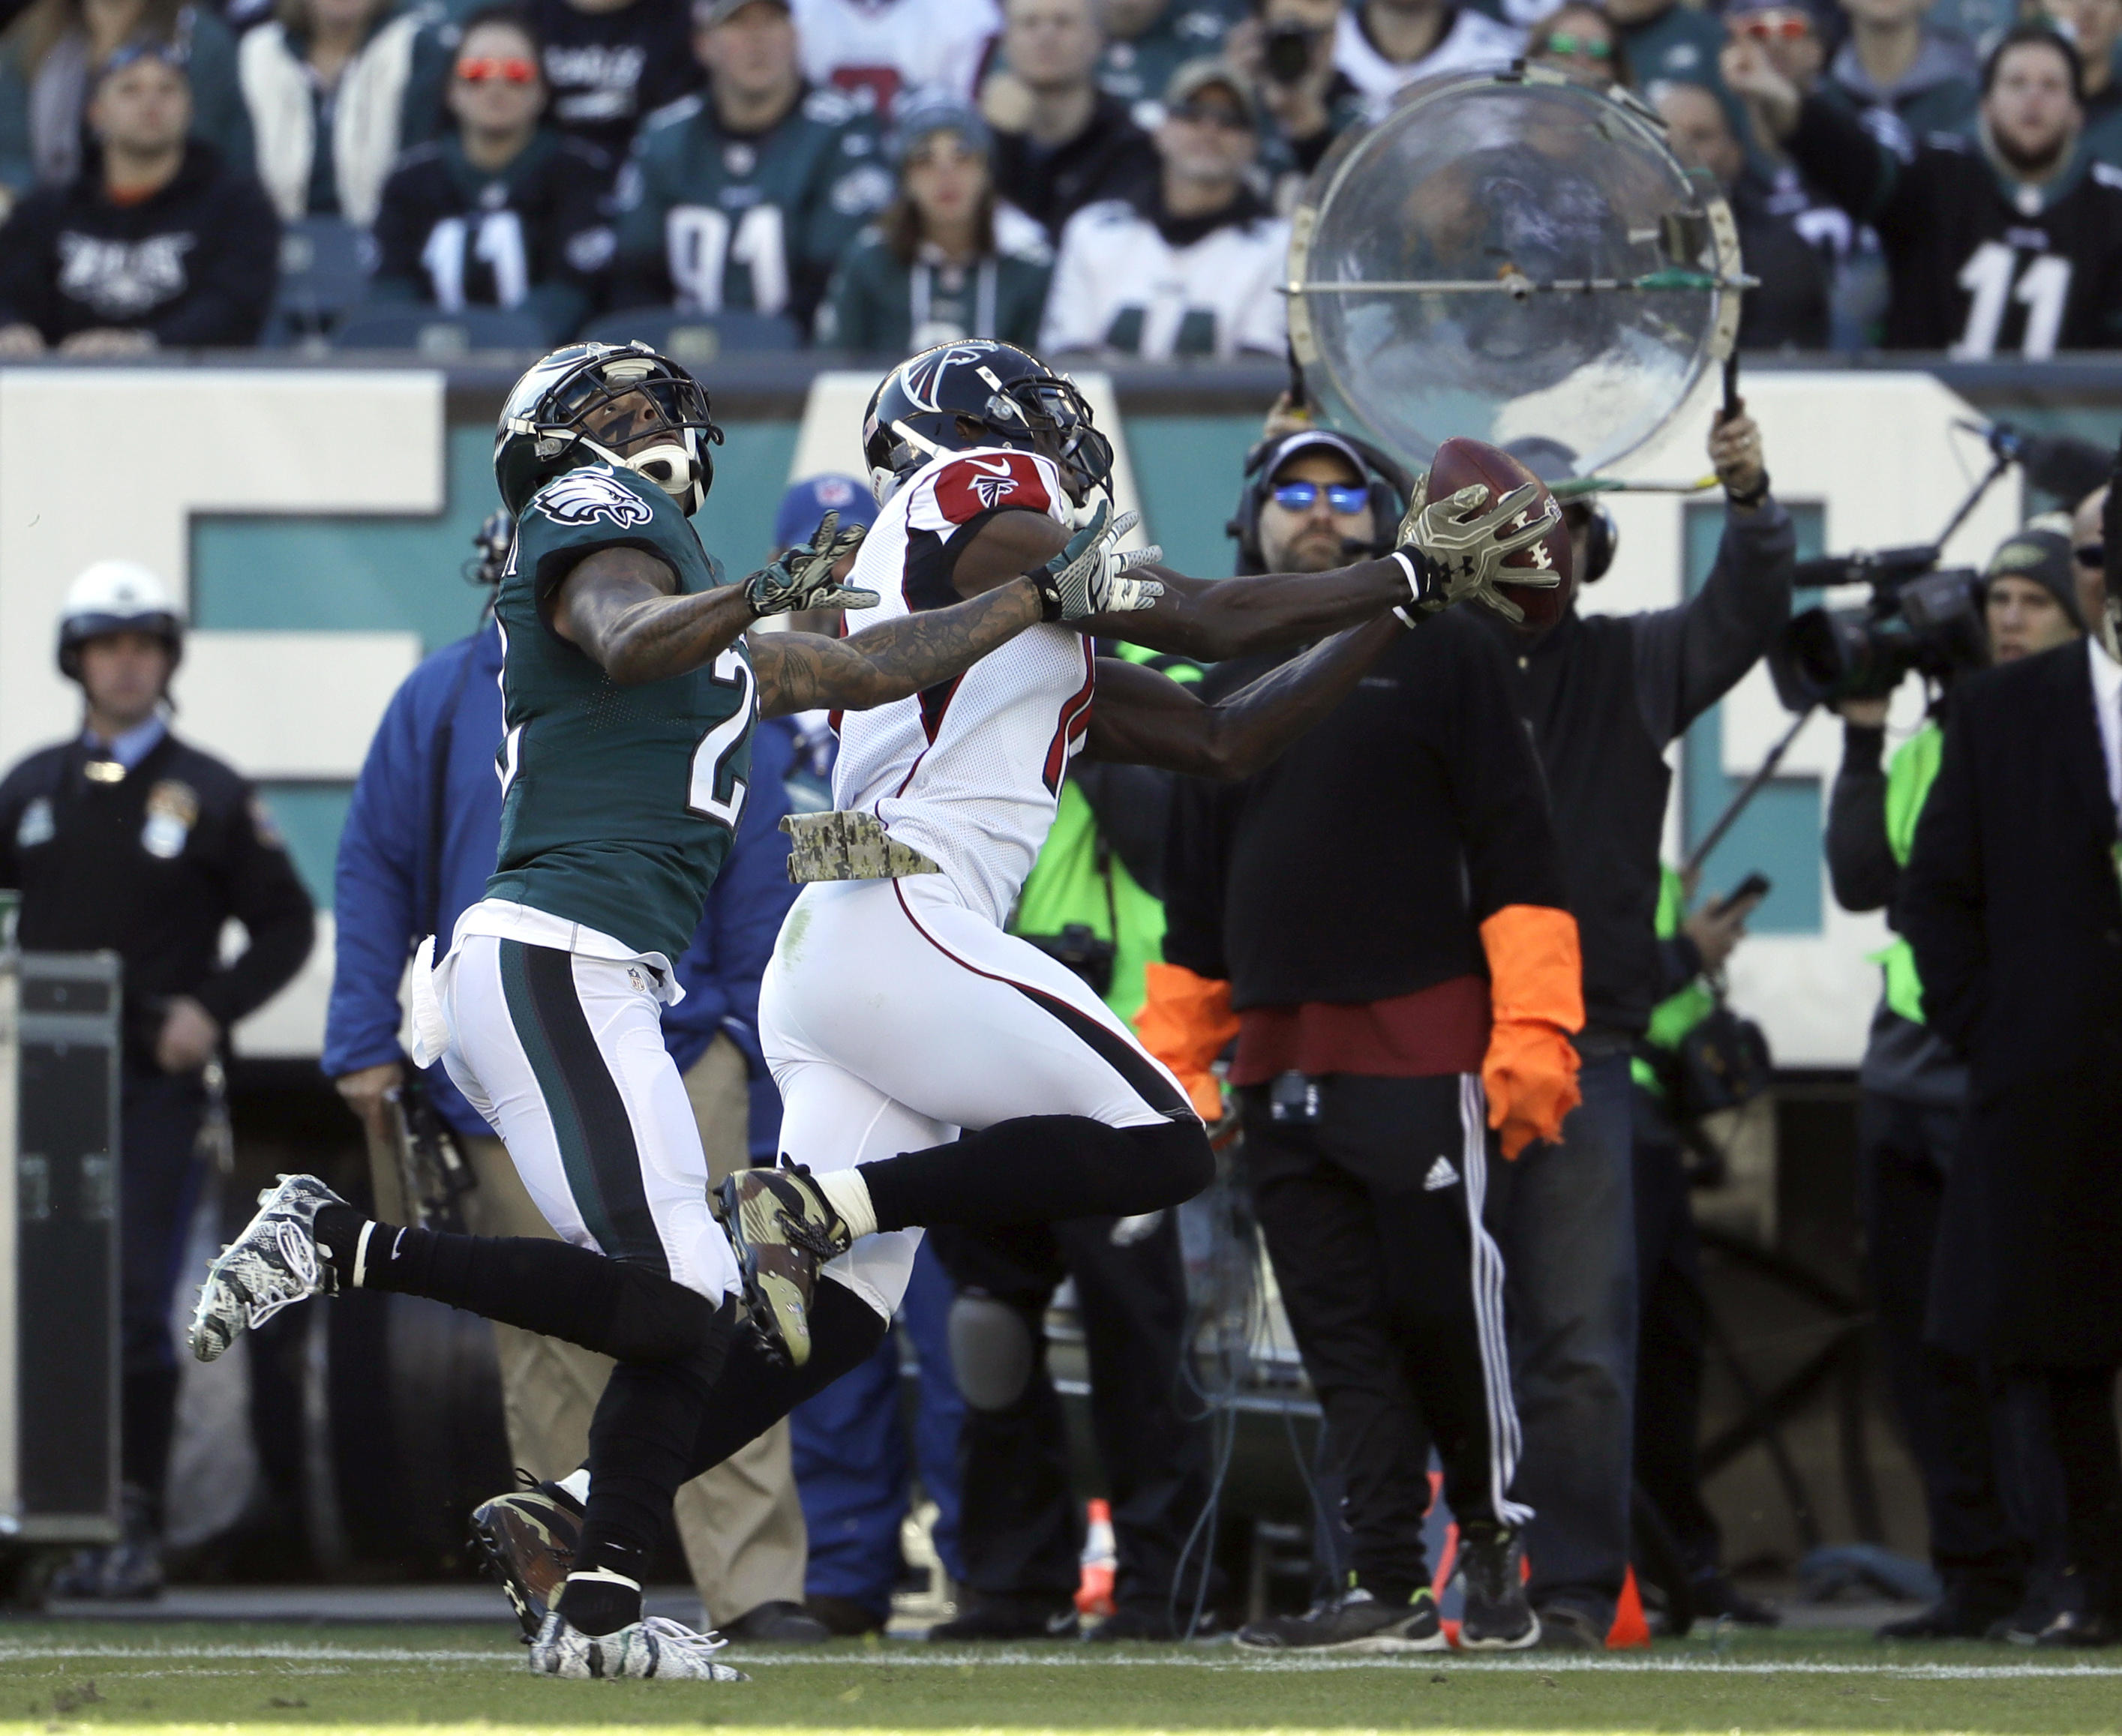 Atlanta Falcons' Julio Jones makes a reception during the first half of an NFL football game against the Philadelphia Eagles, Sunday, Nov. 13, 2016, in Philadelphia. (AP Photo/Matt Rourke)